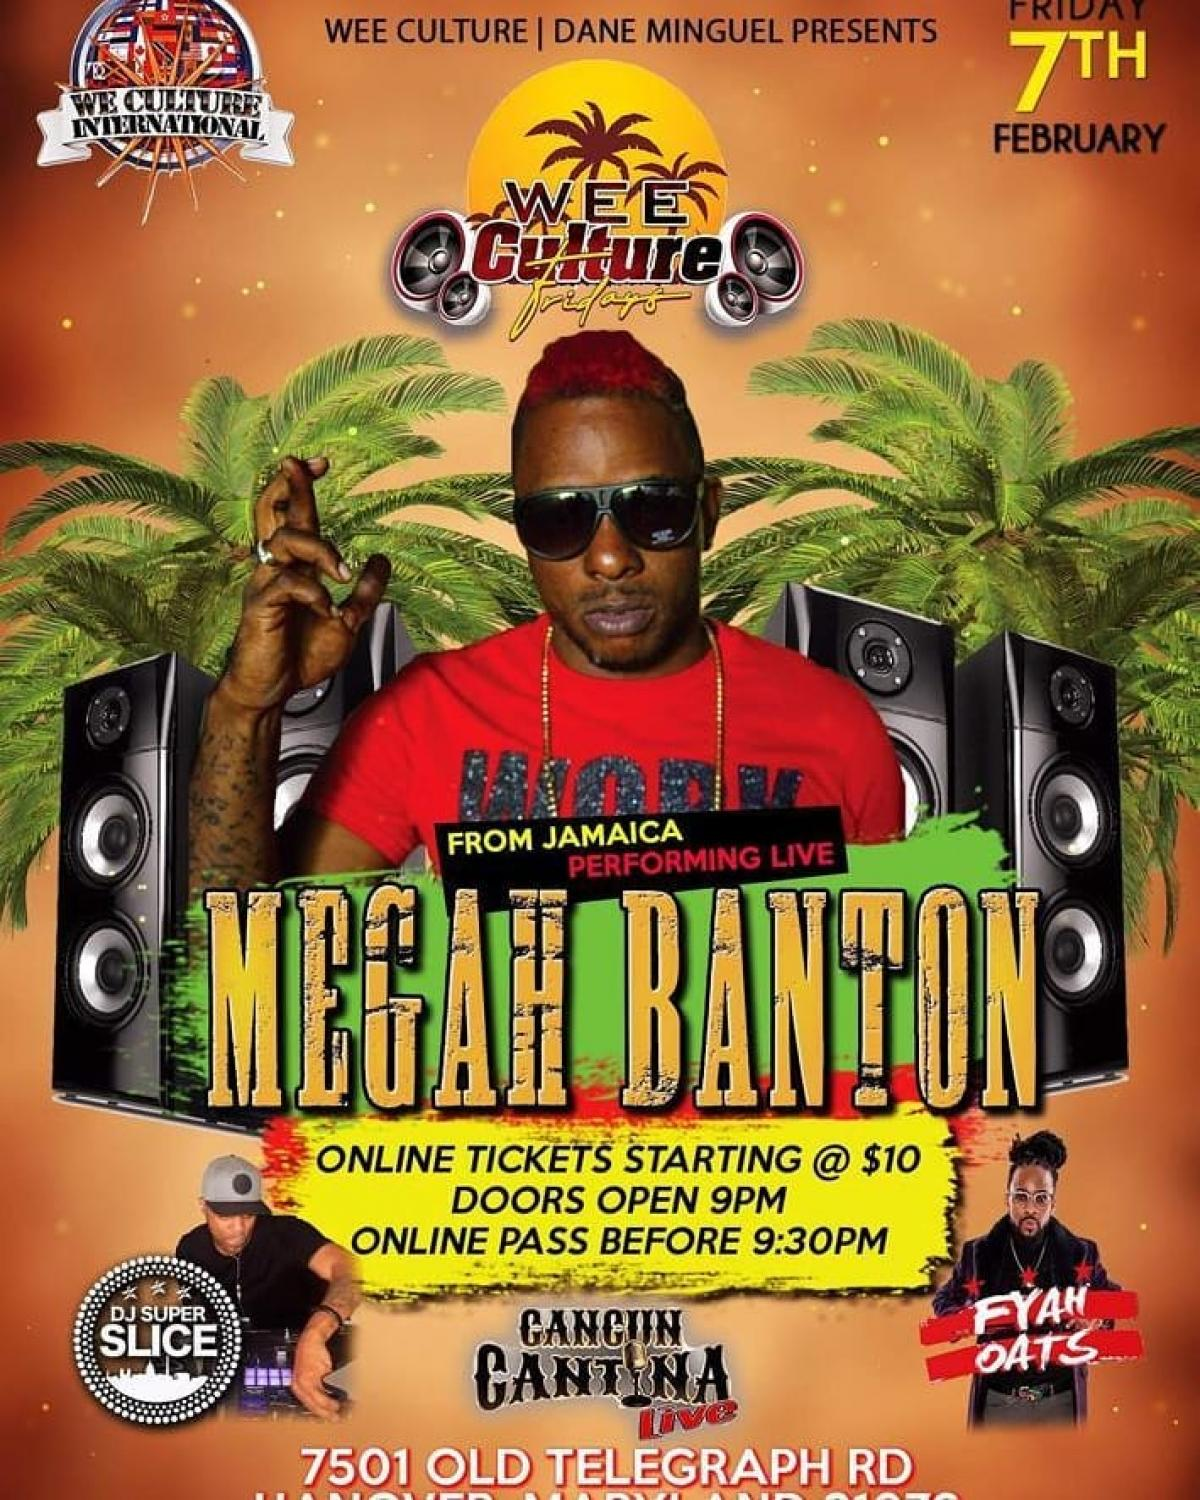 Wee Culture Fridays feat. Megah Banton flyer or graphic.